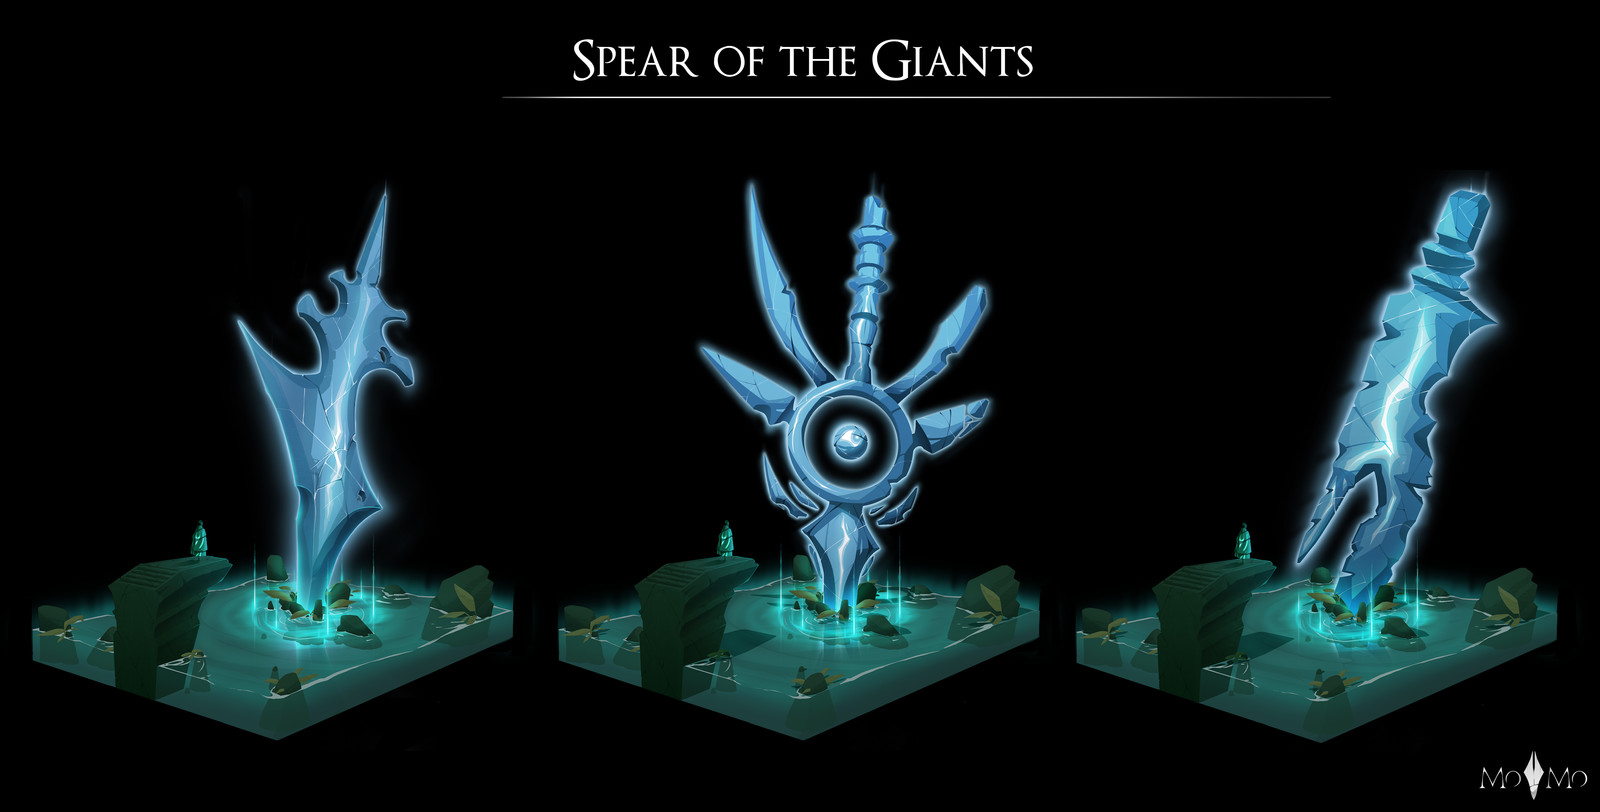 Spear of the giants